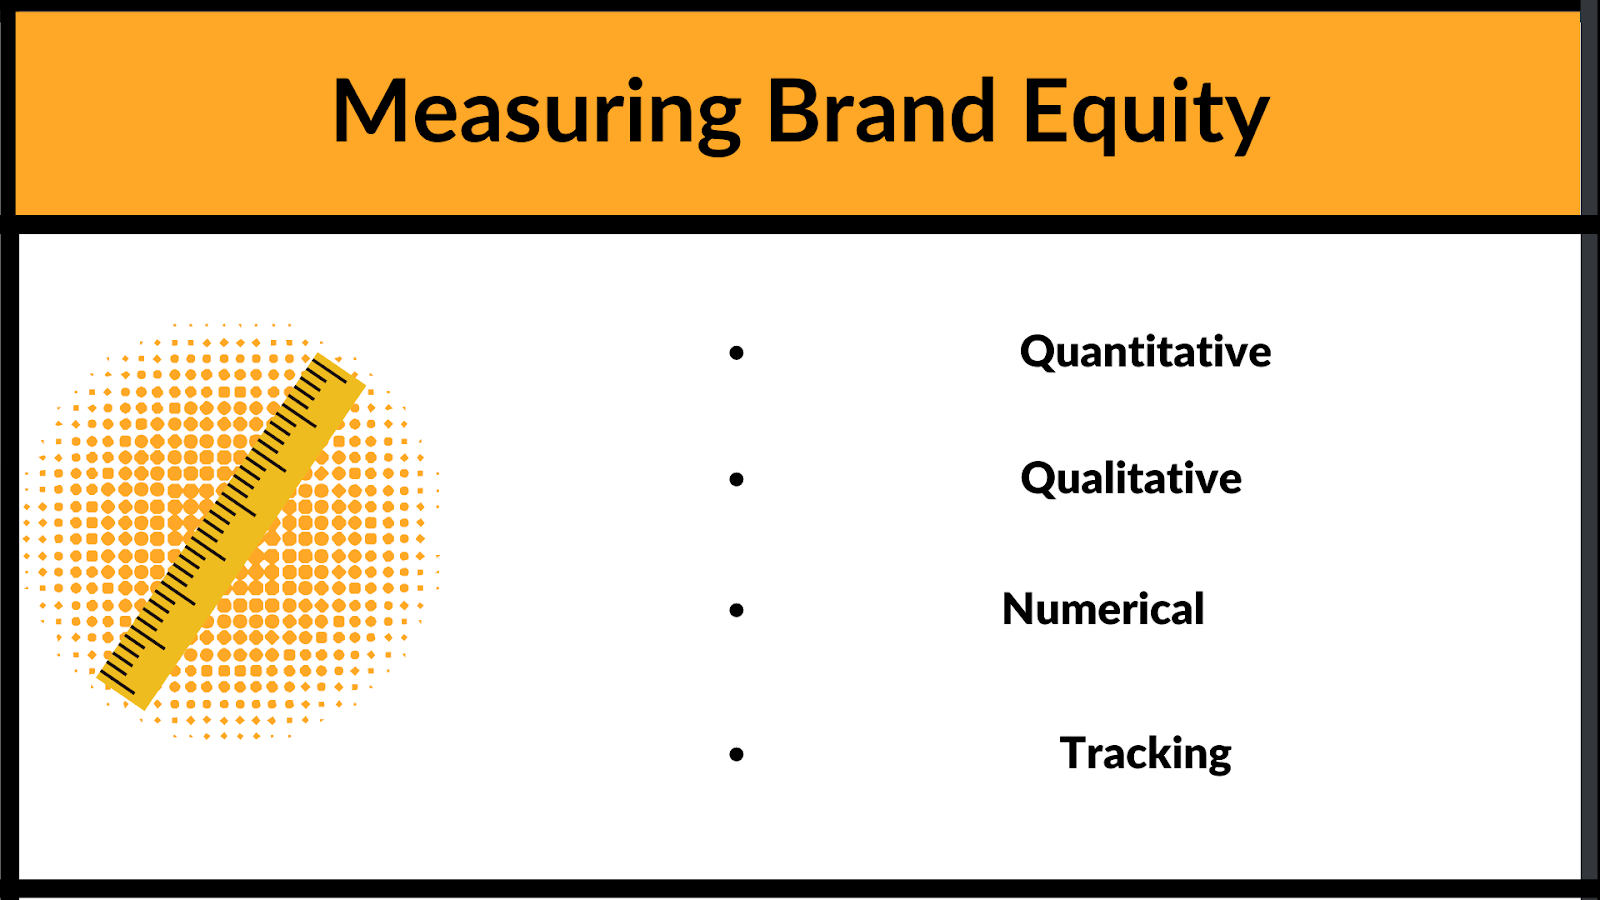 Measuring Brand Equity, what to take in mind?